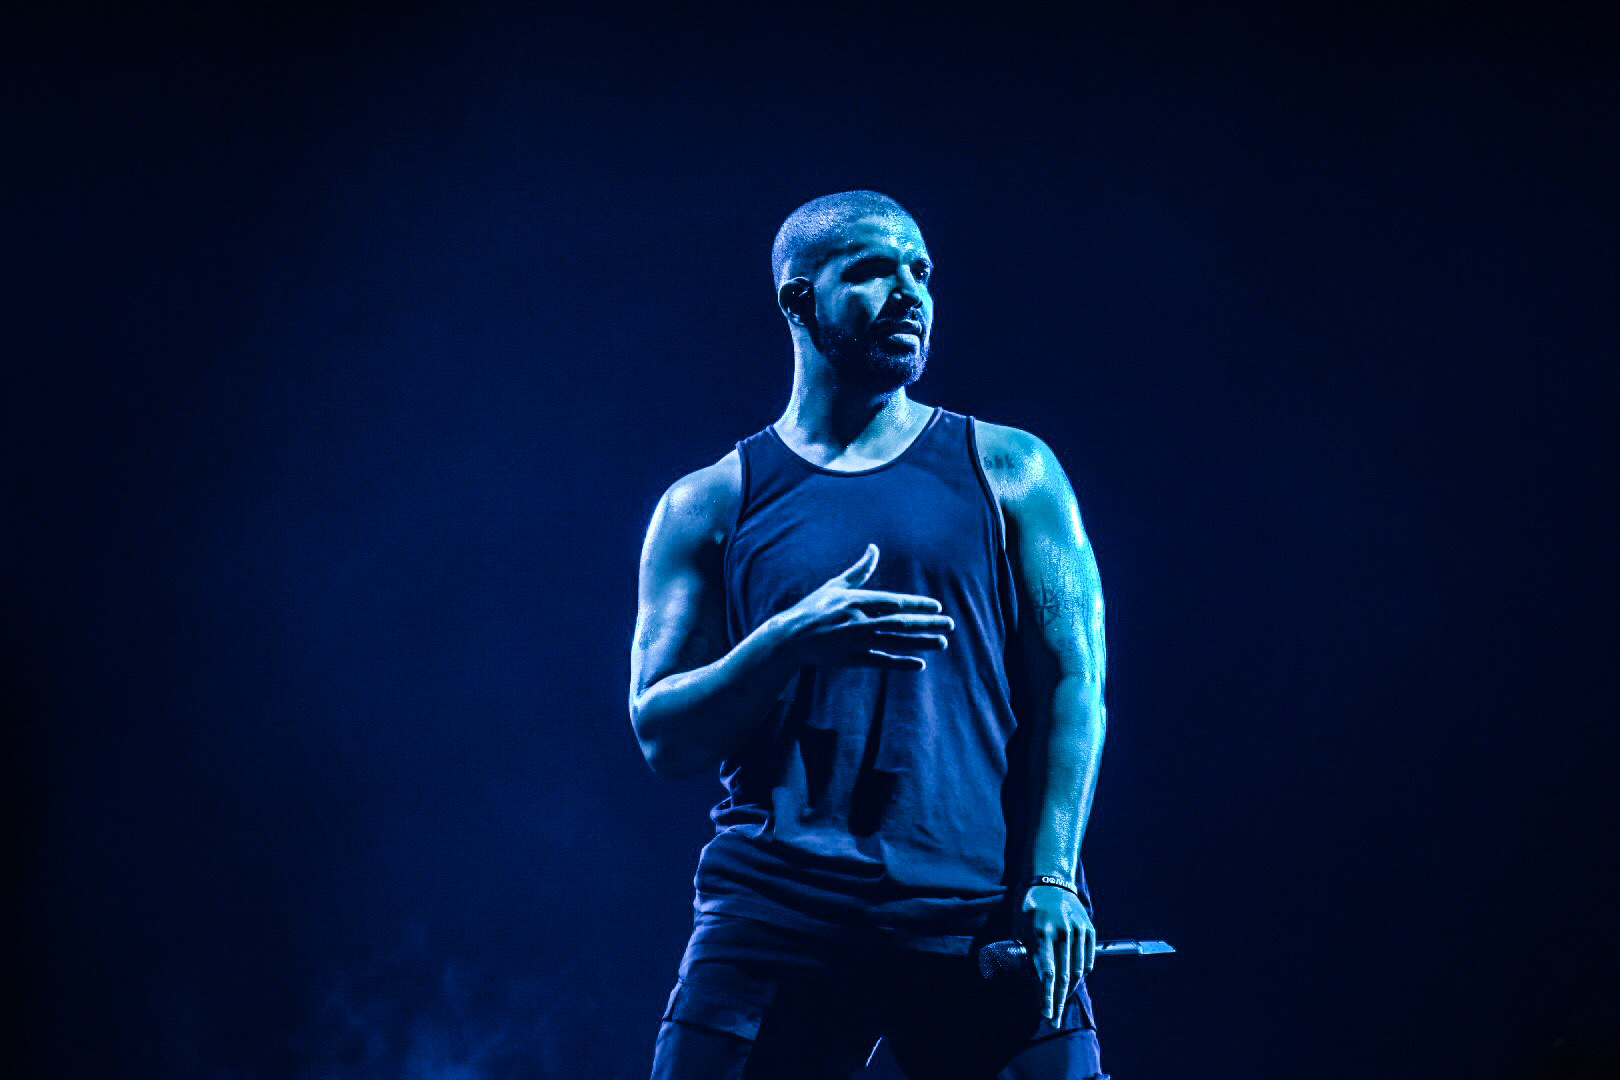 11 - Drake Performs at Glasgow's SSE Hydro as part of The Boy Meets Word Tour - 23-03-17 - Picture By - Calum Buchan Photography.jpg